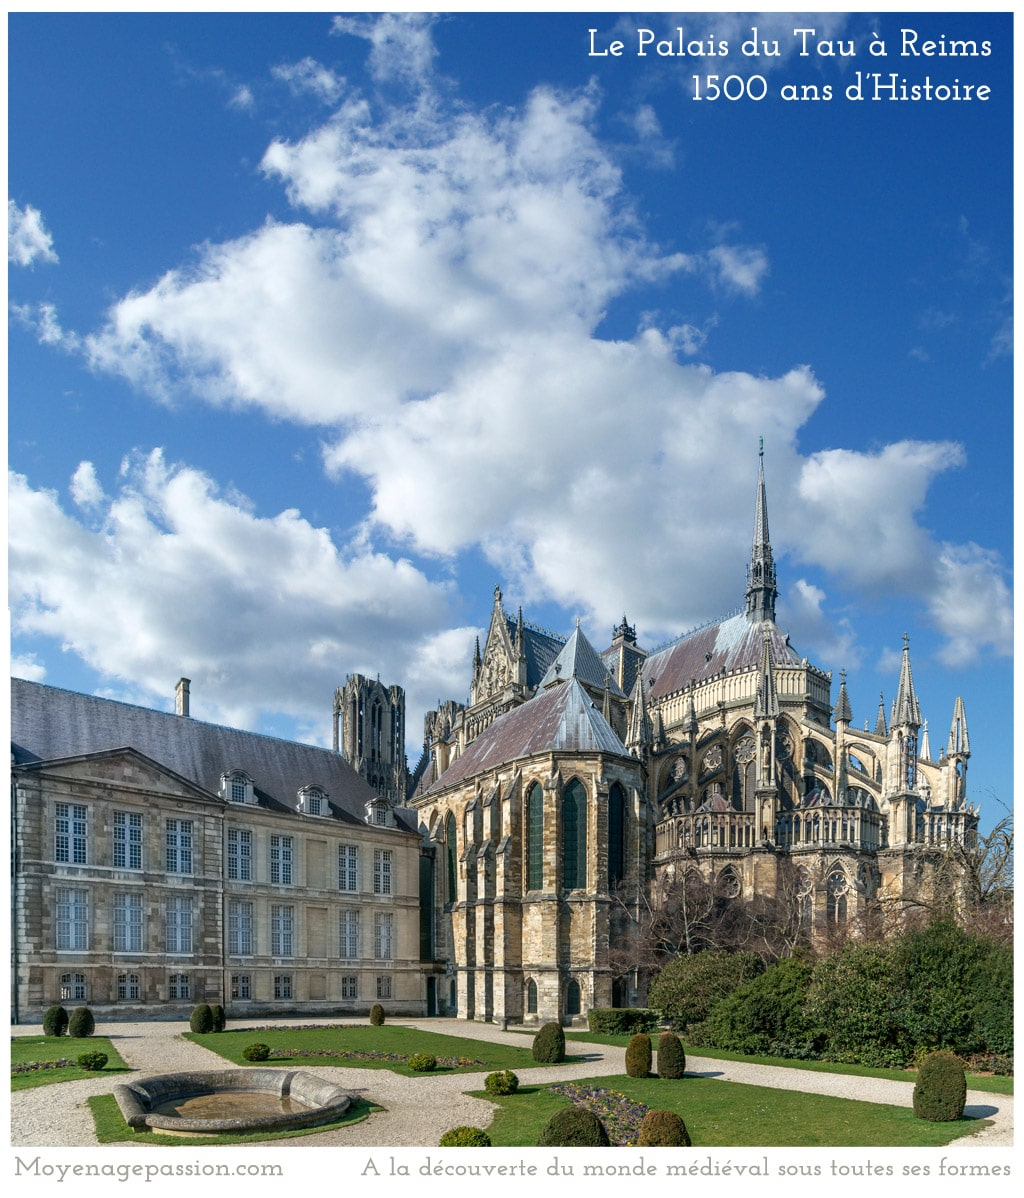 palais_du_tau_reims_monument_historique_patrimoine_national_residence_royale_moyen-age_central